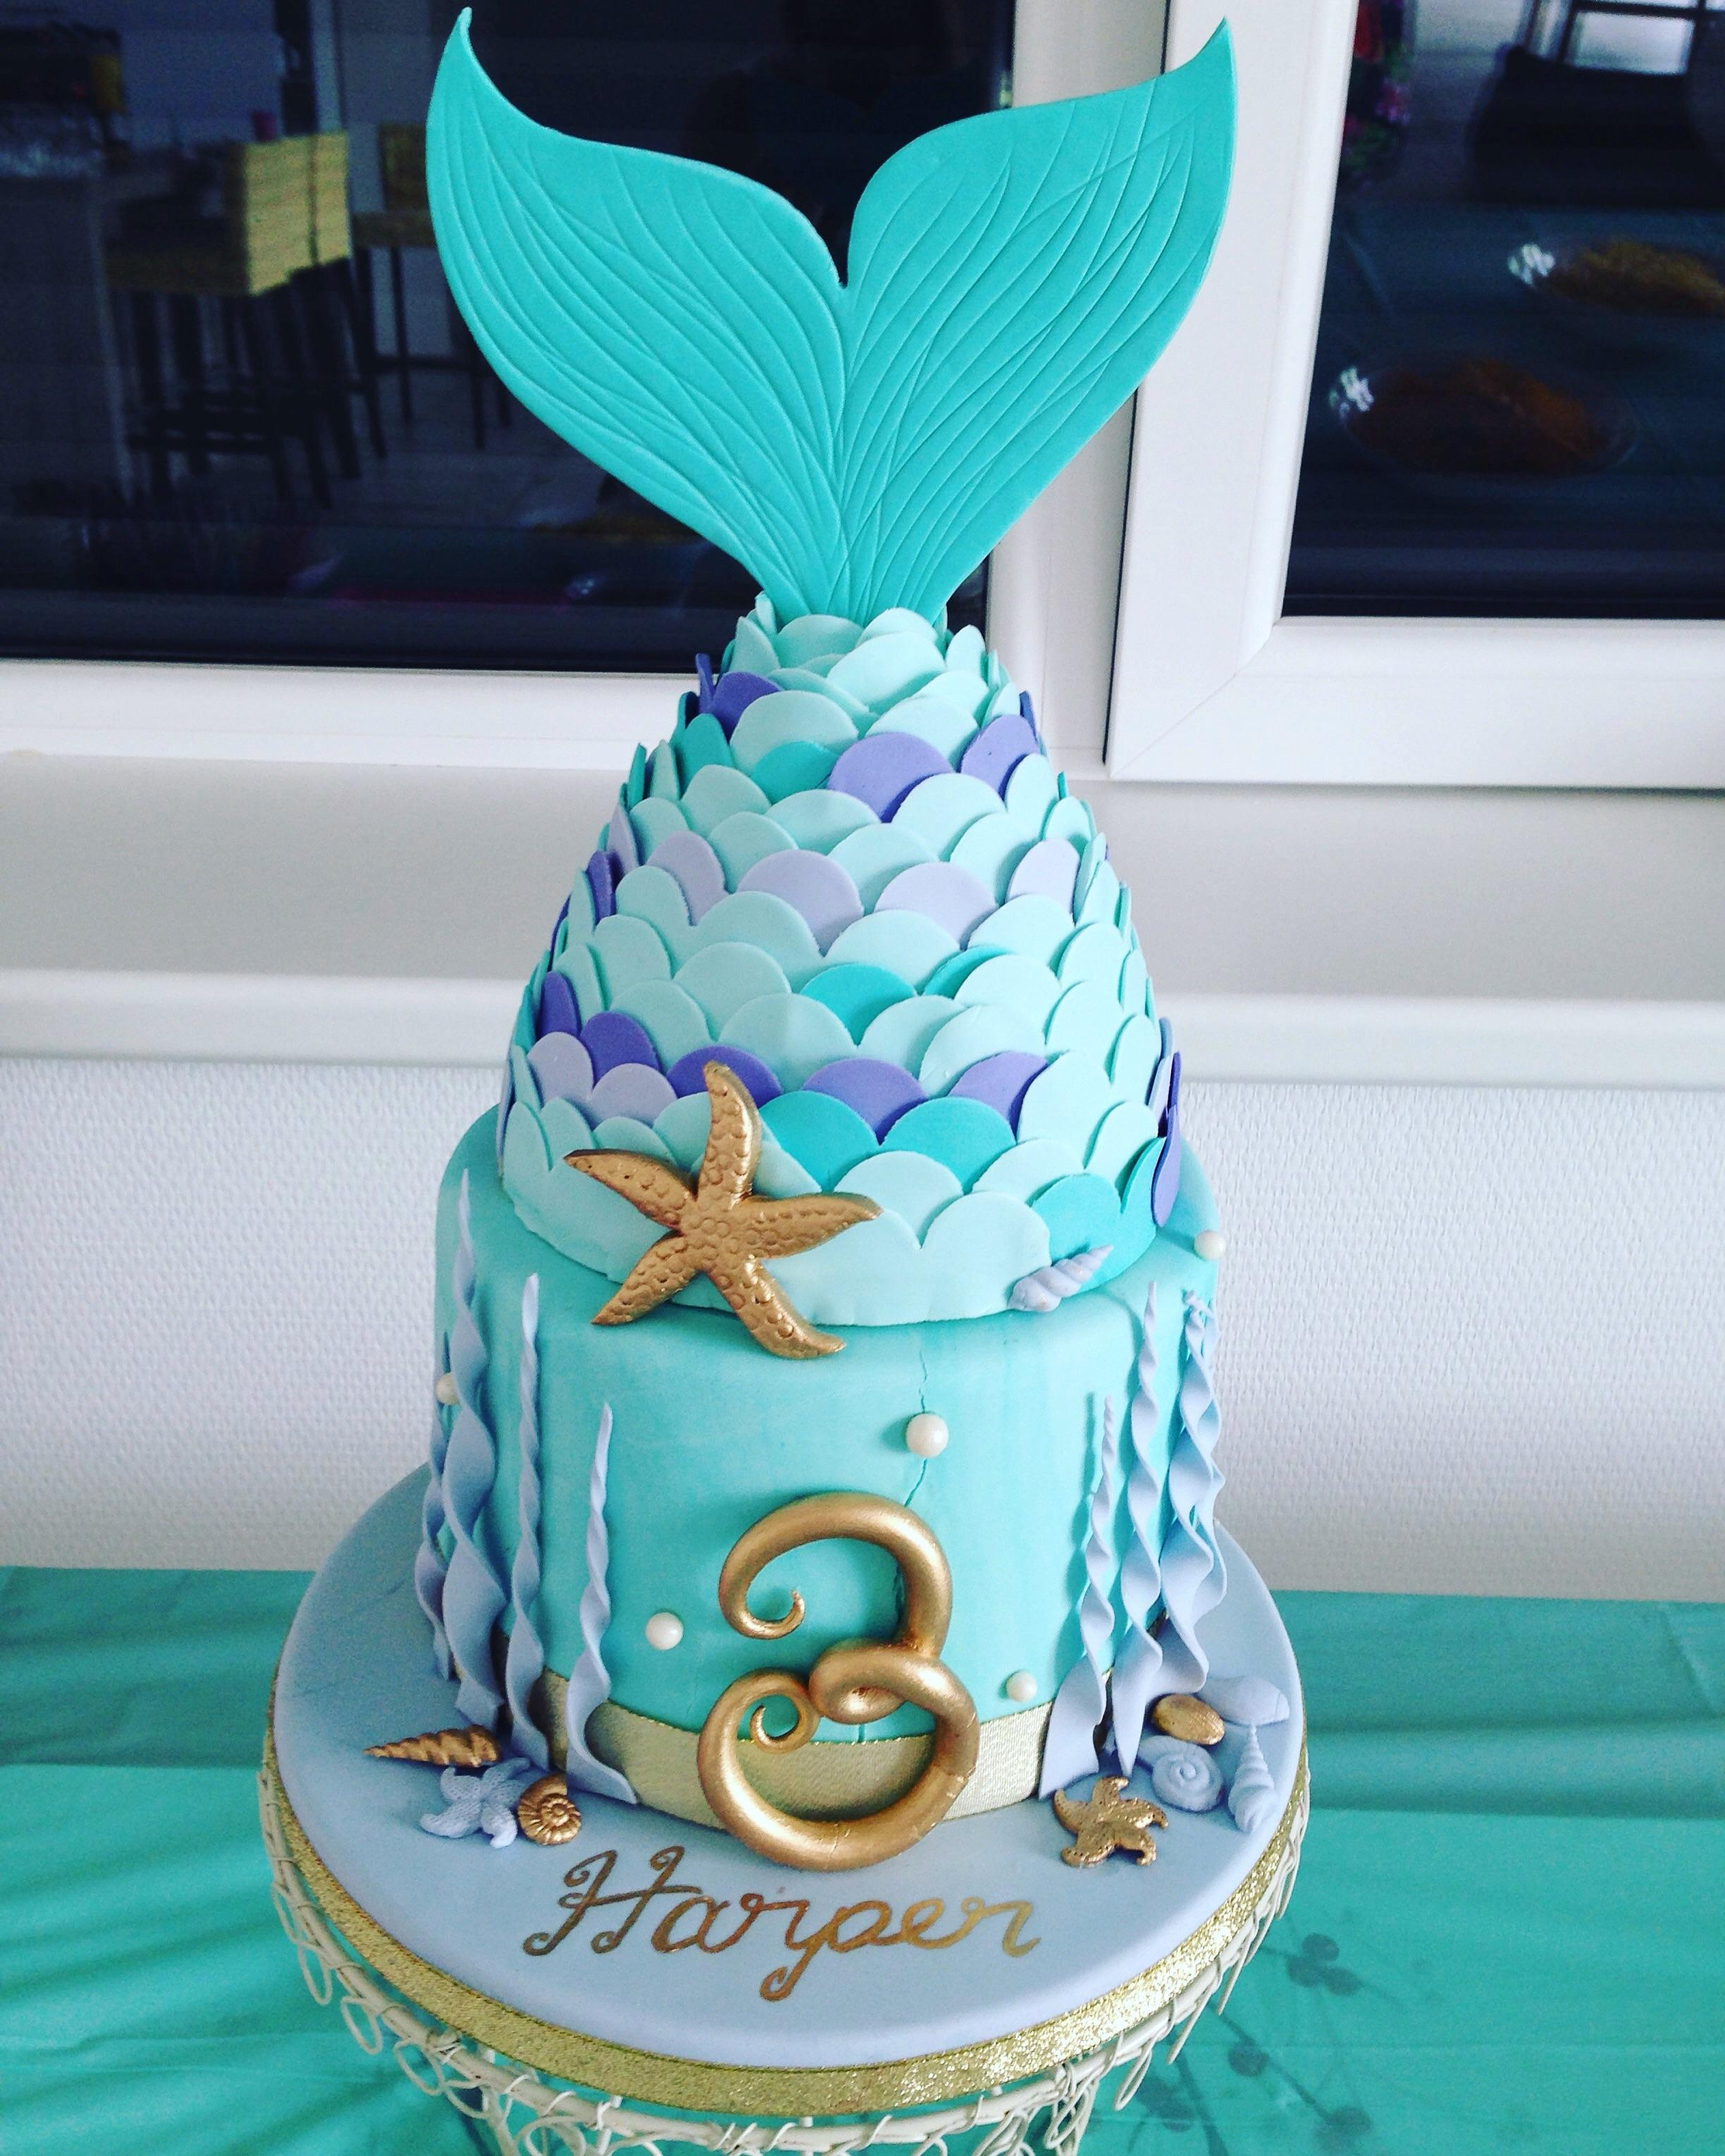 Mermaid Birthday Cake Mermaid Birthday Cake I Made For My Daughters 3rd Birthday Yesterday